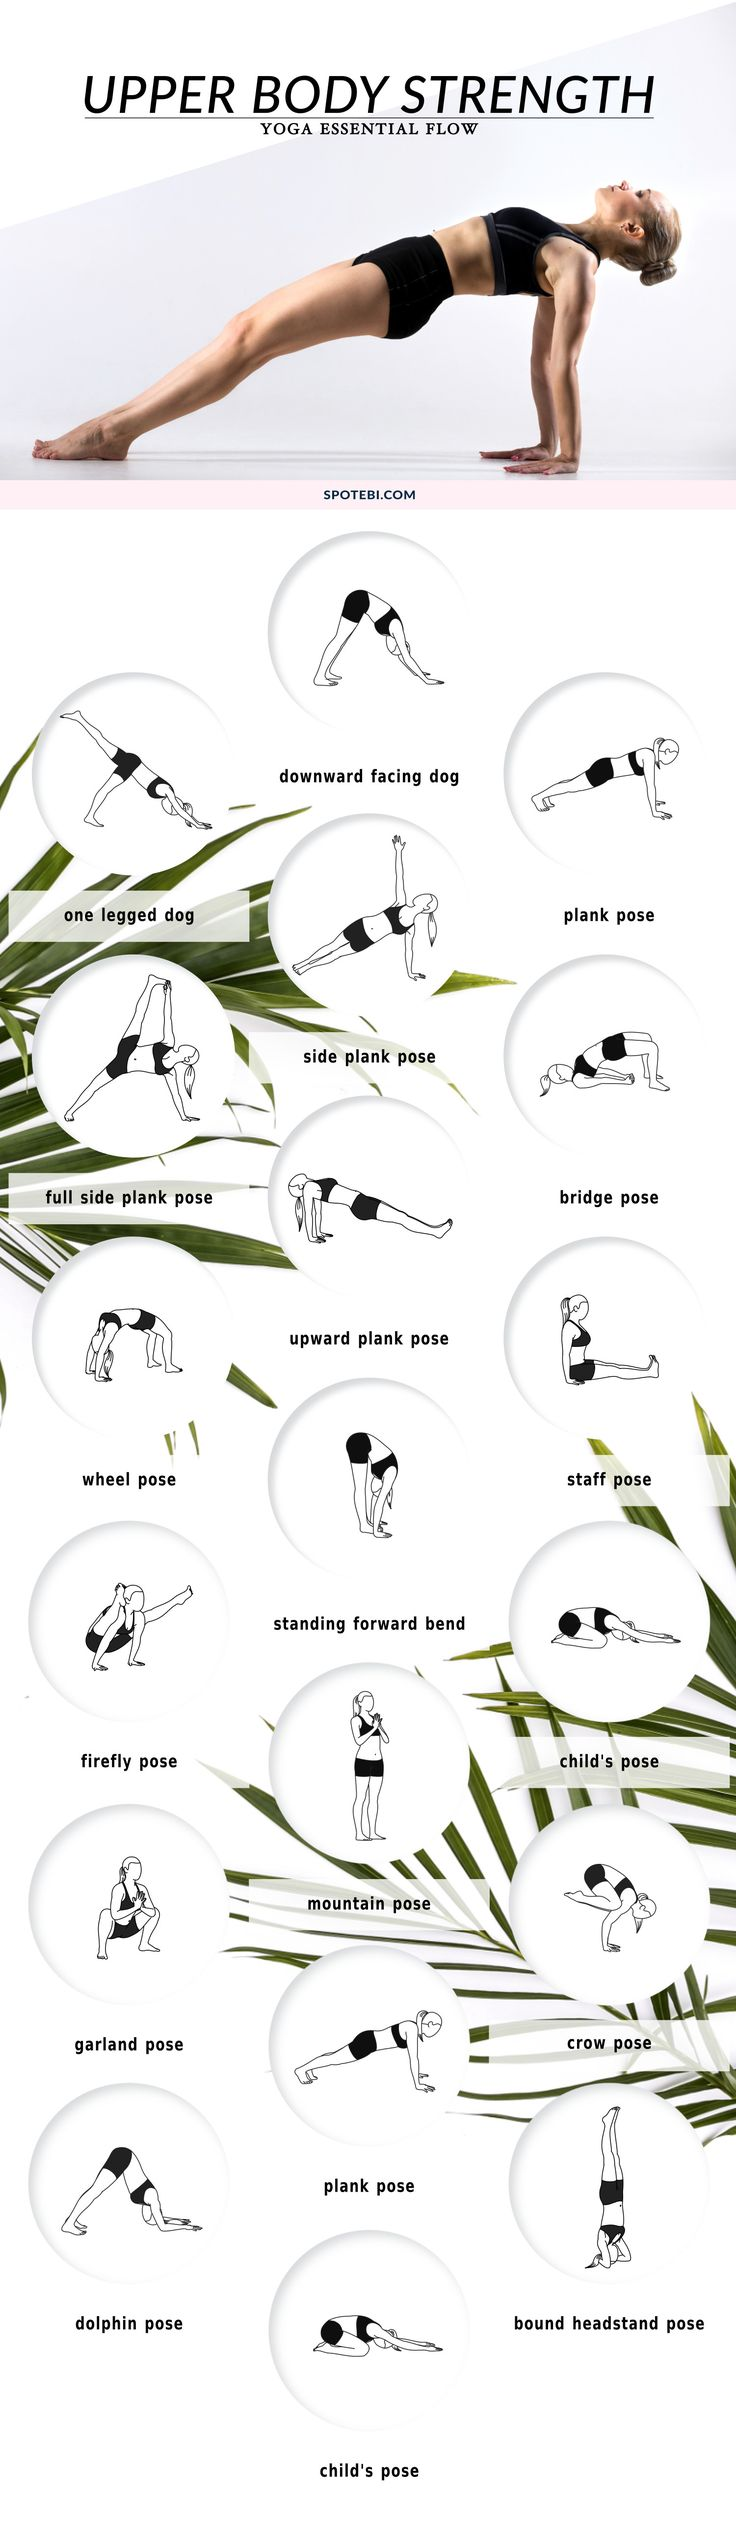 Build strength in the shoulders, arms, chest, and upper back and improve your flexibility with this upper body strengthening yoga flow. Breathe deeply, keep your body balanced and engage your core for stability as you move through these challenging poses.